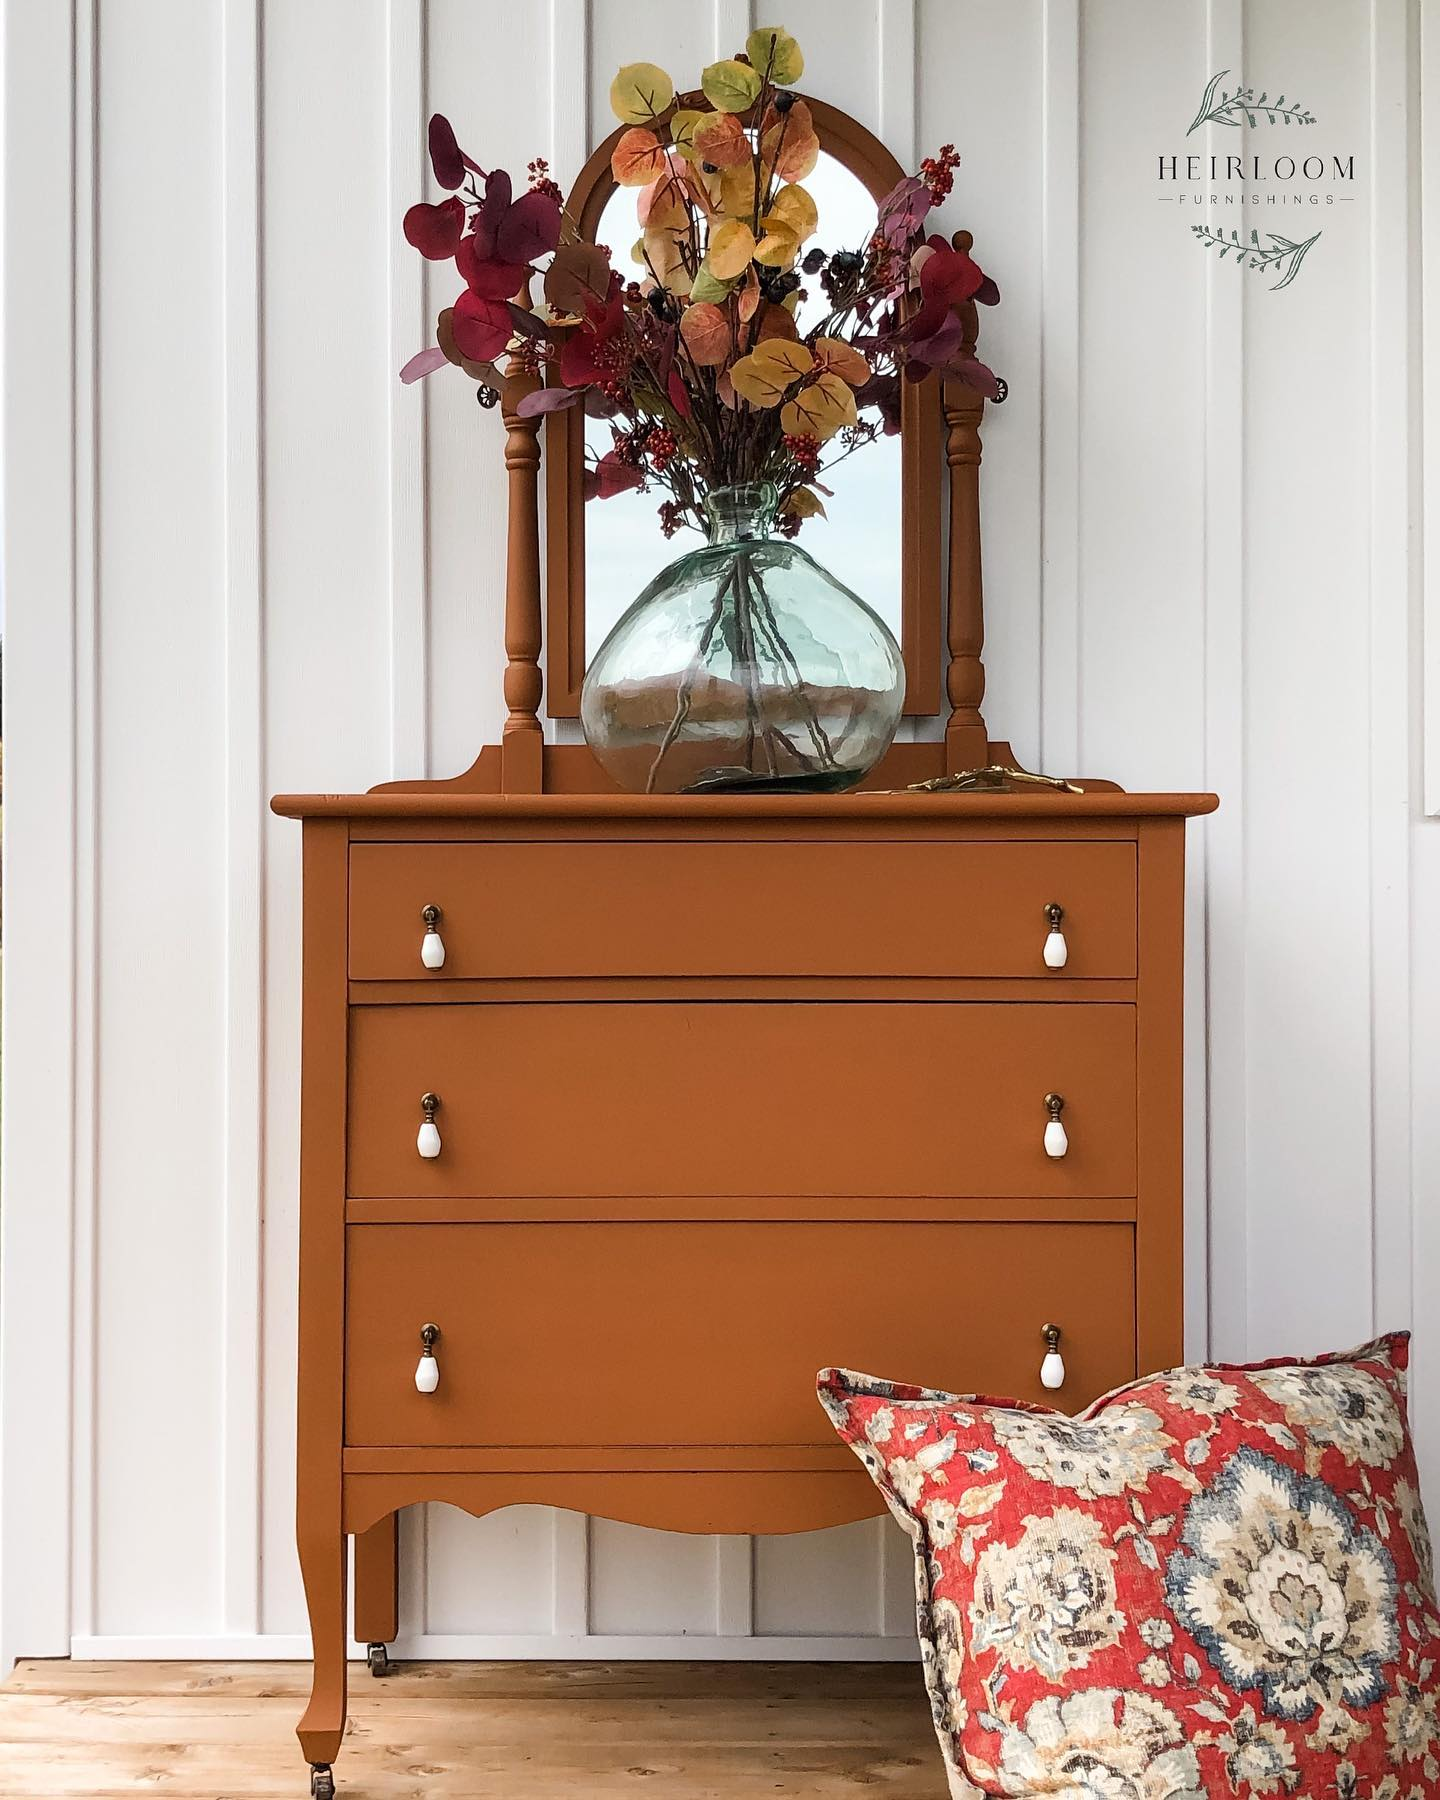 Three Drawer Dresser with Mirror in With a Twist